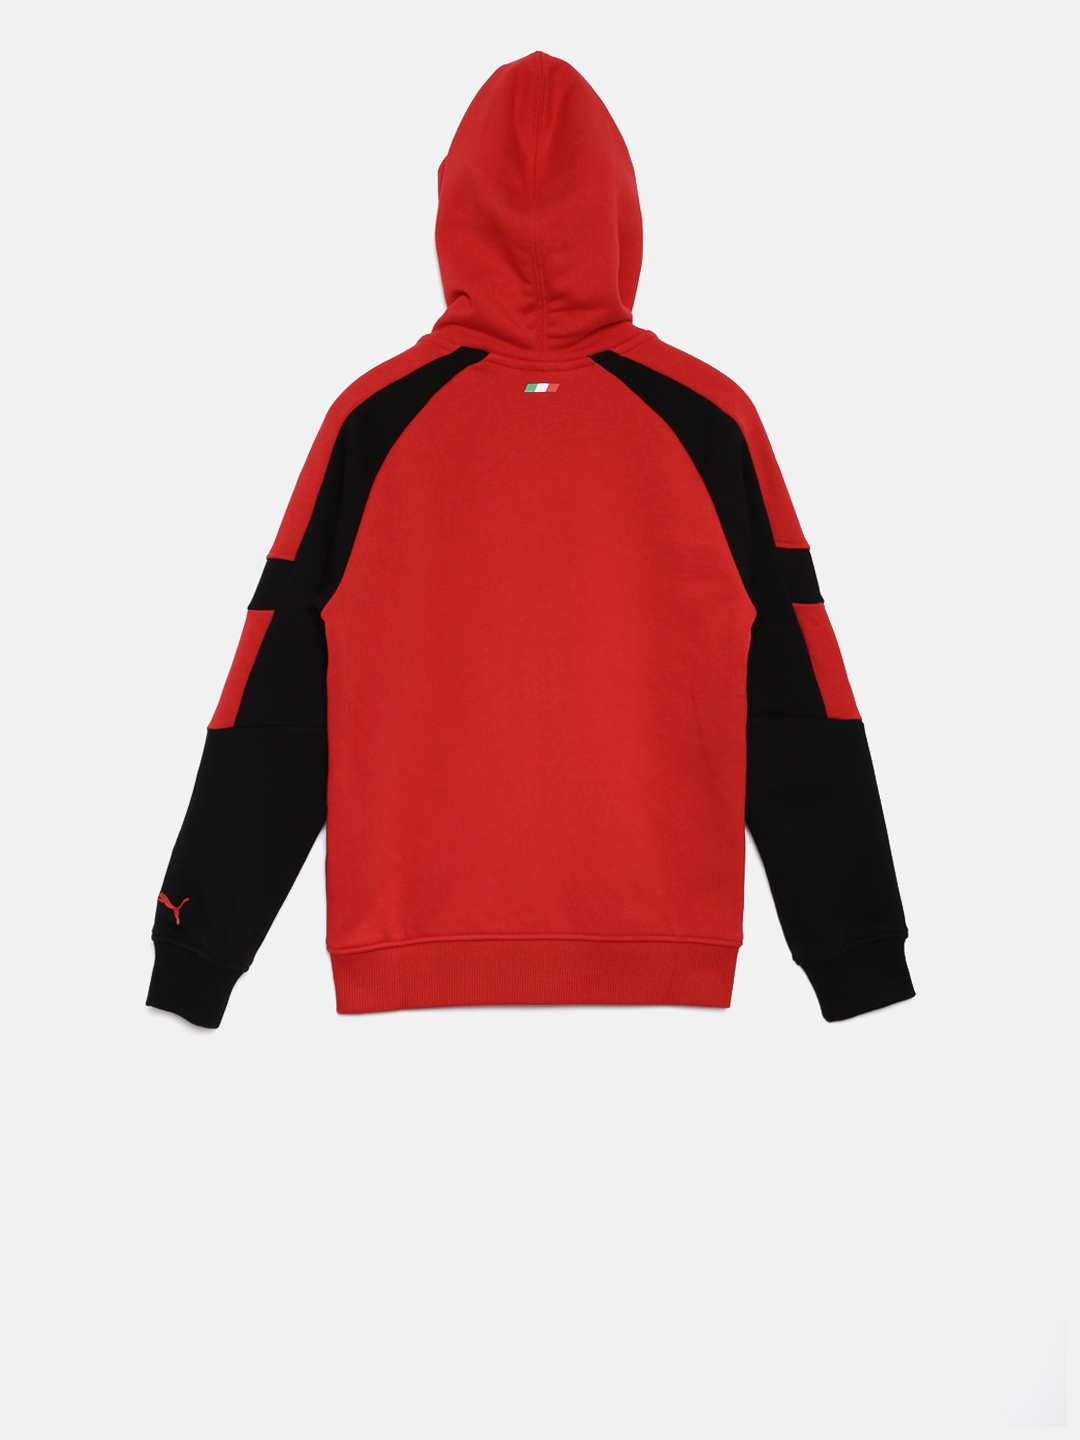 Buy Puma Boys Red   Black Ferrari Solid Hooded Sweatshirt ... 3c378bfc4